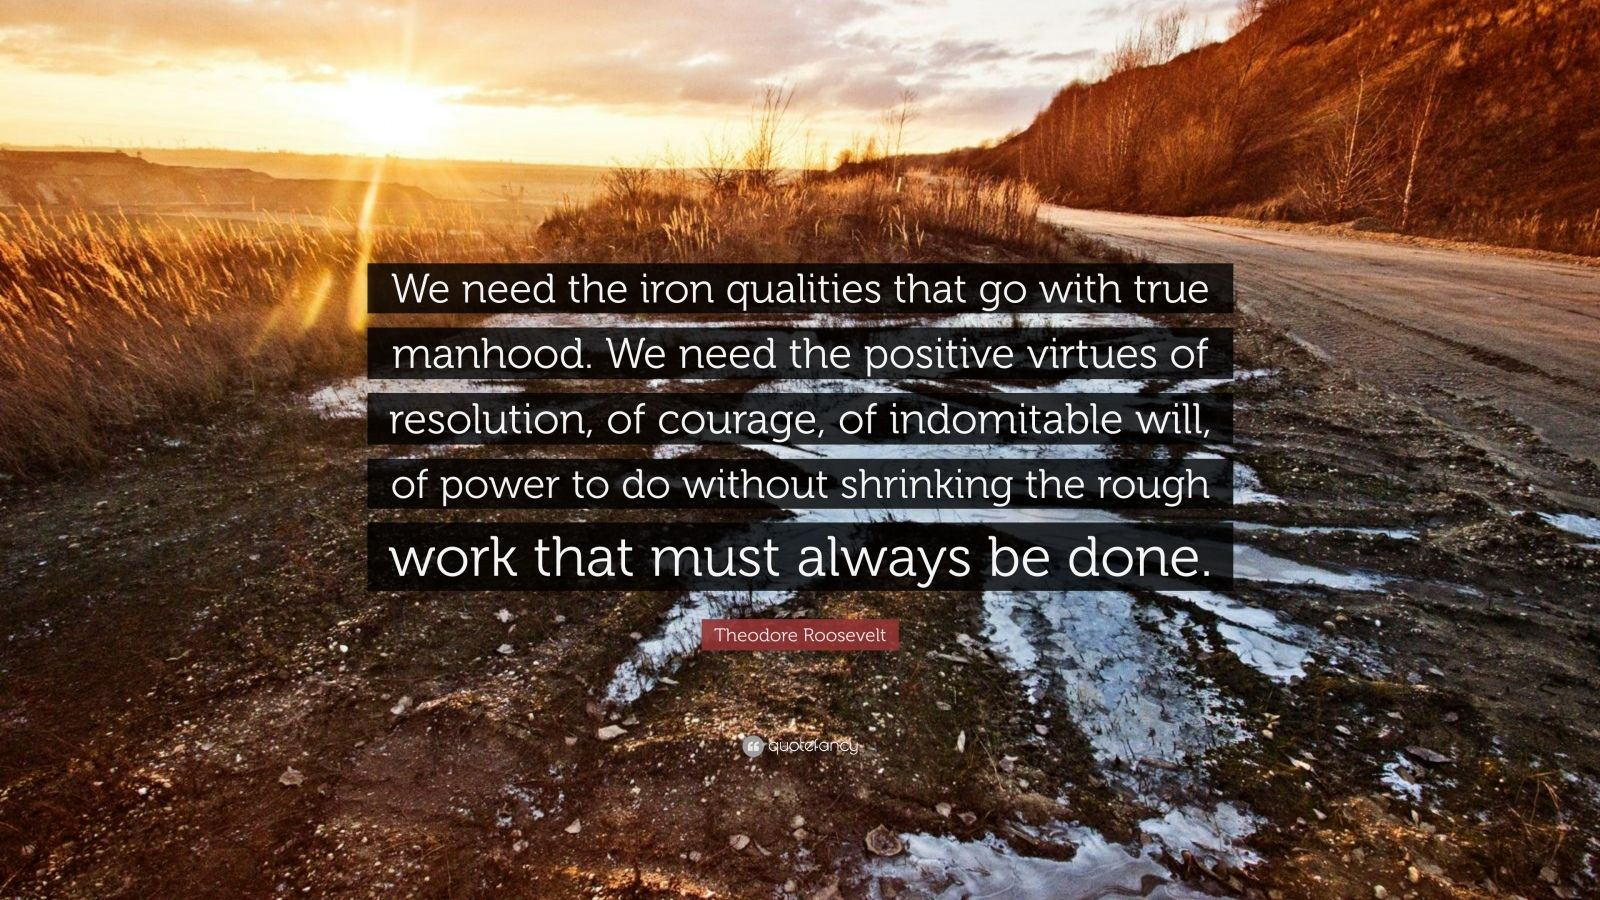 "Theodore Roosevelt Quote: ""We need the iron qualities that go with true manhood. We need the positive virtues of resolution, of courage, of indomitable will, of power to do without shrinking the rough work that must always be done."""